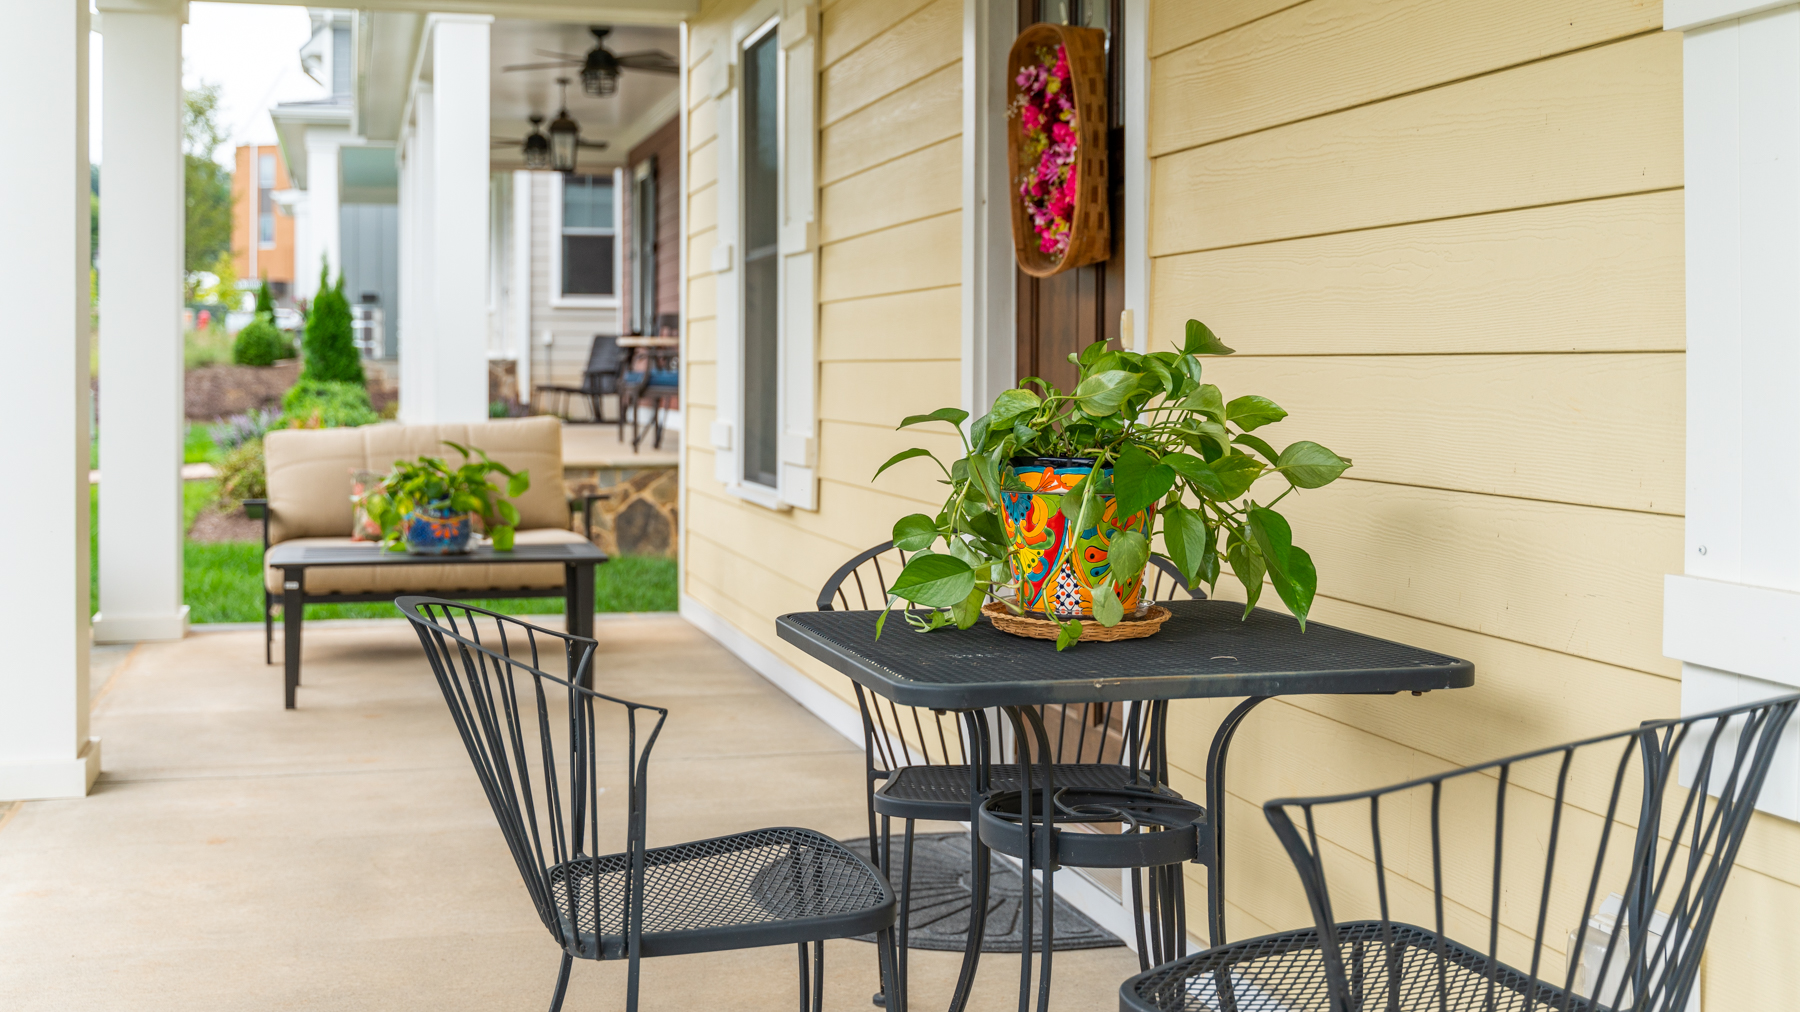 Riverwalk Xing Front porch with table and chairs